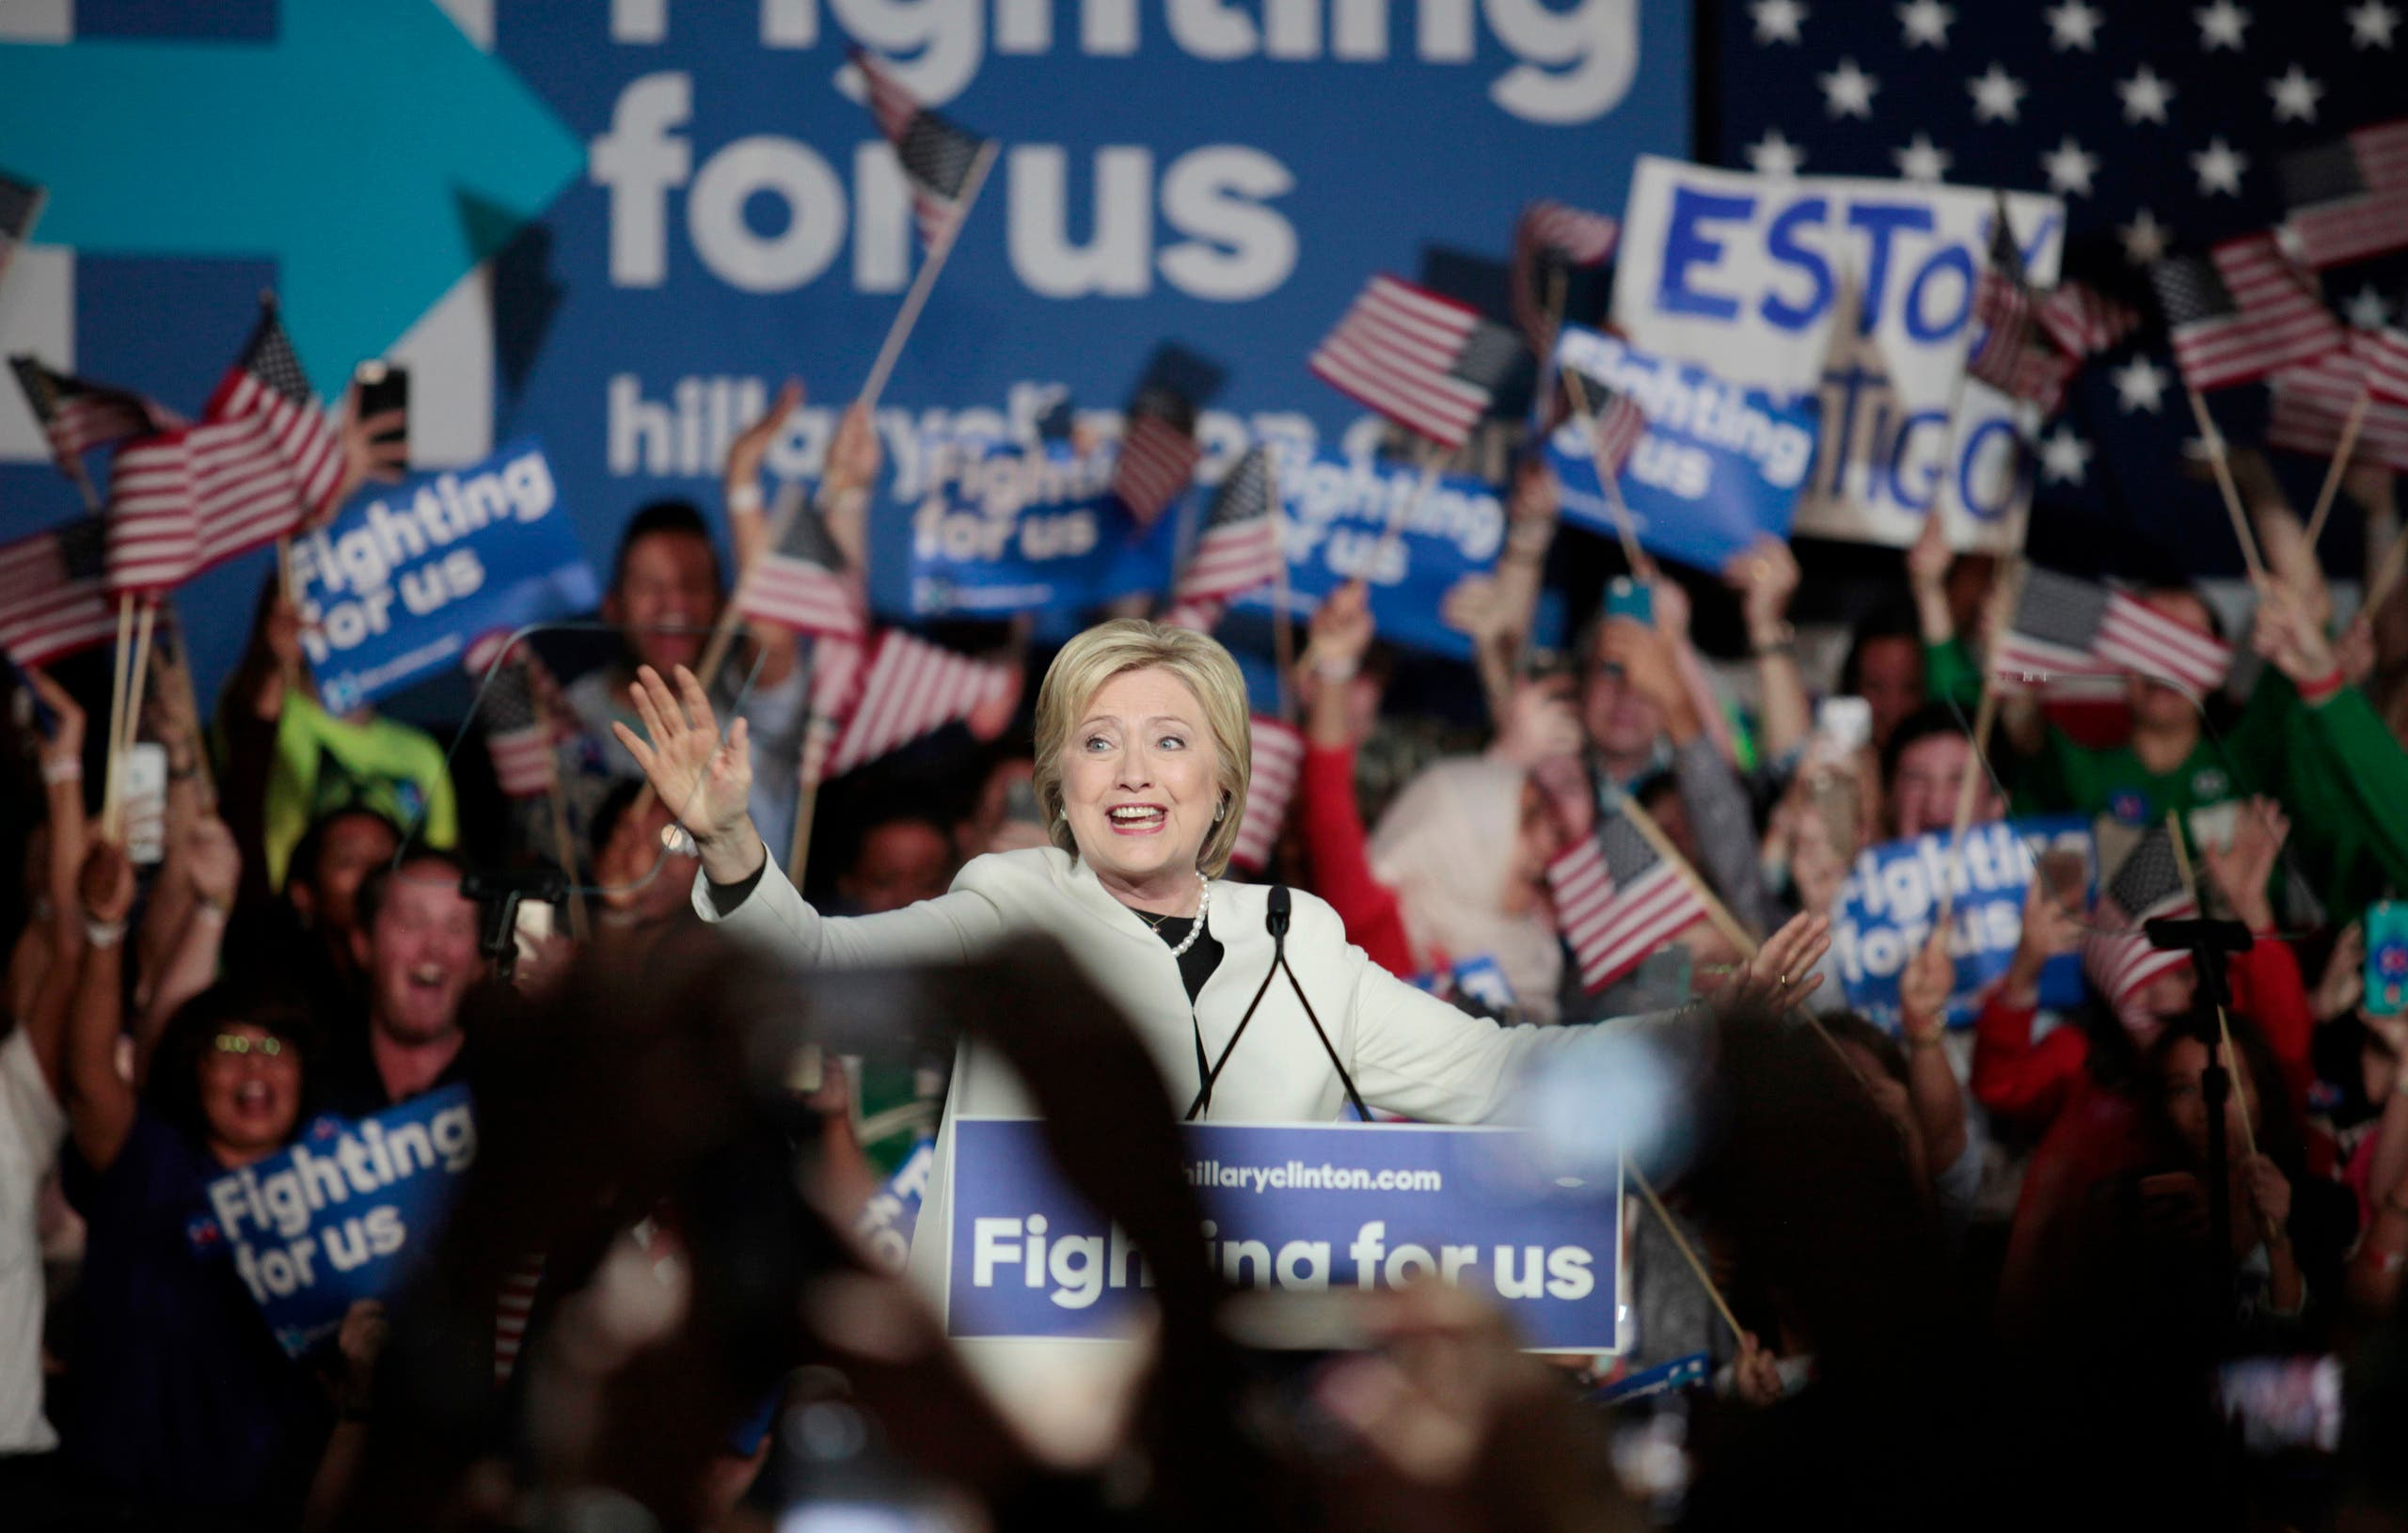 U.S. presidential candidate Hillary Clinton speaks about the results of the Super Tuesday primaries at a campaign rally in Miami, Florida March 1, 2016.